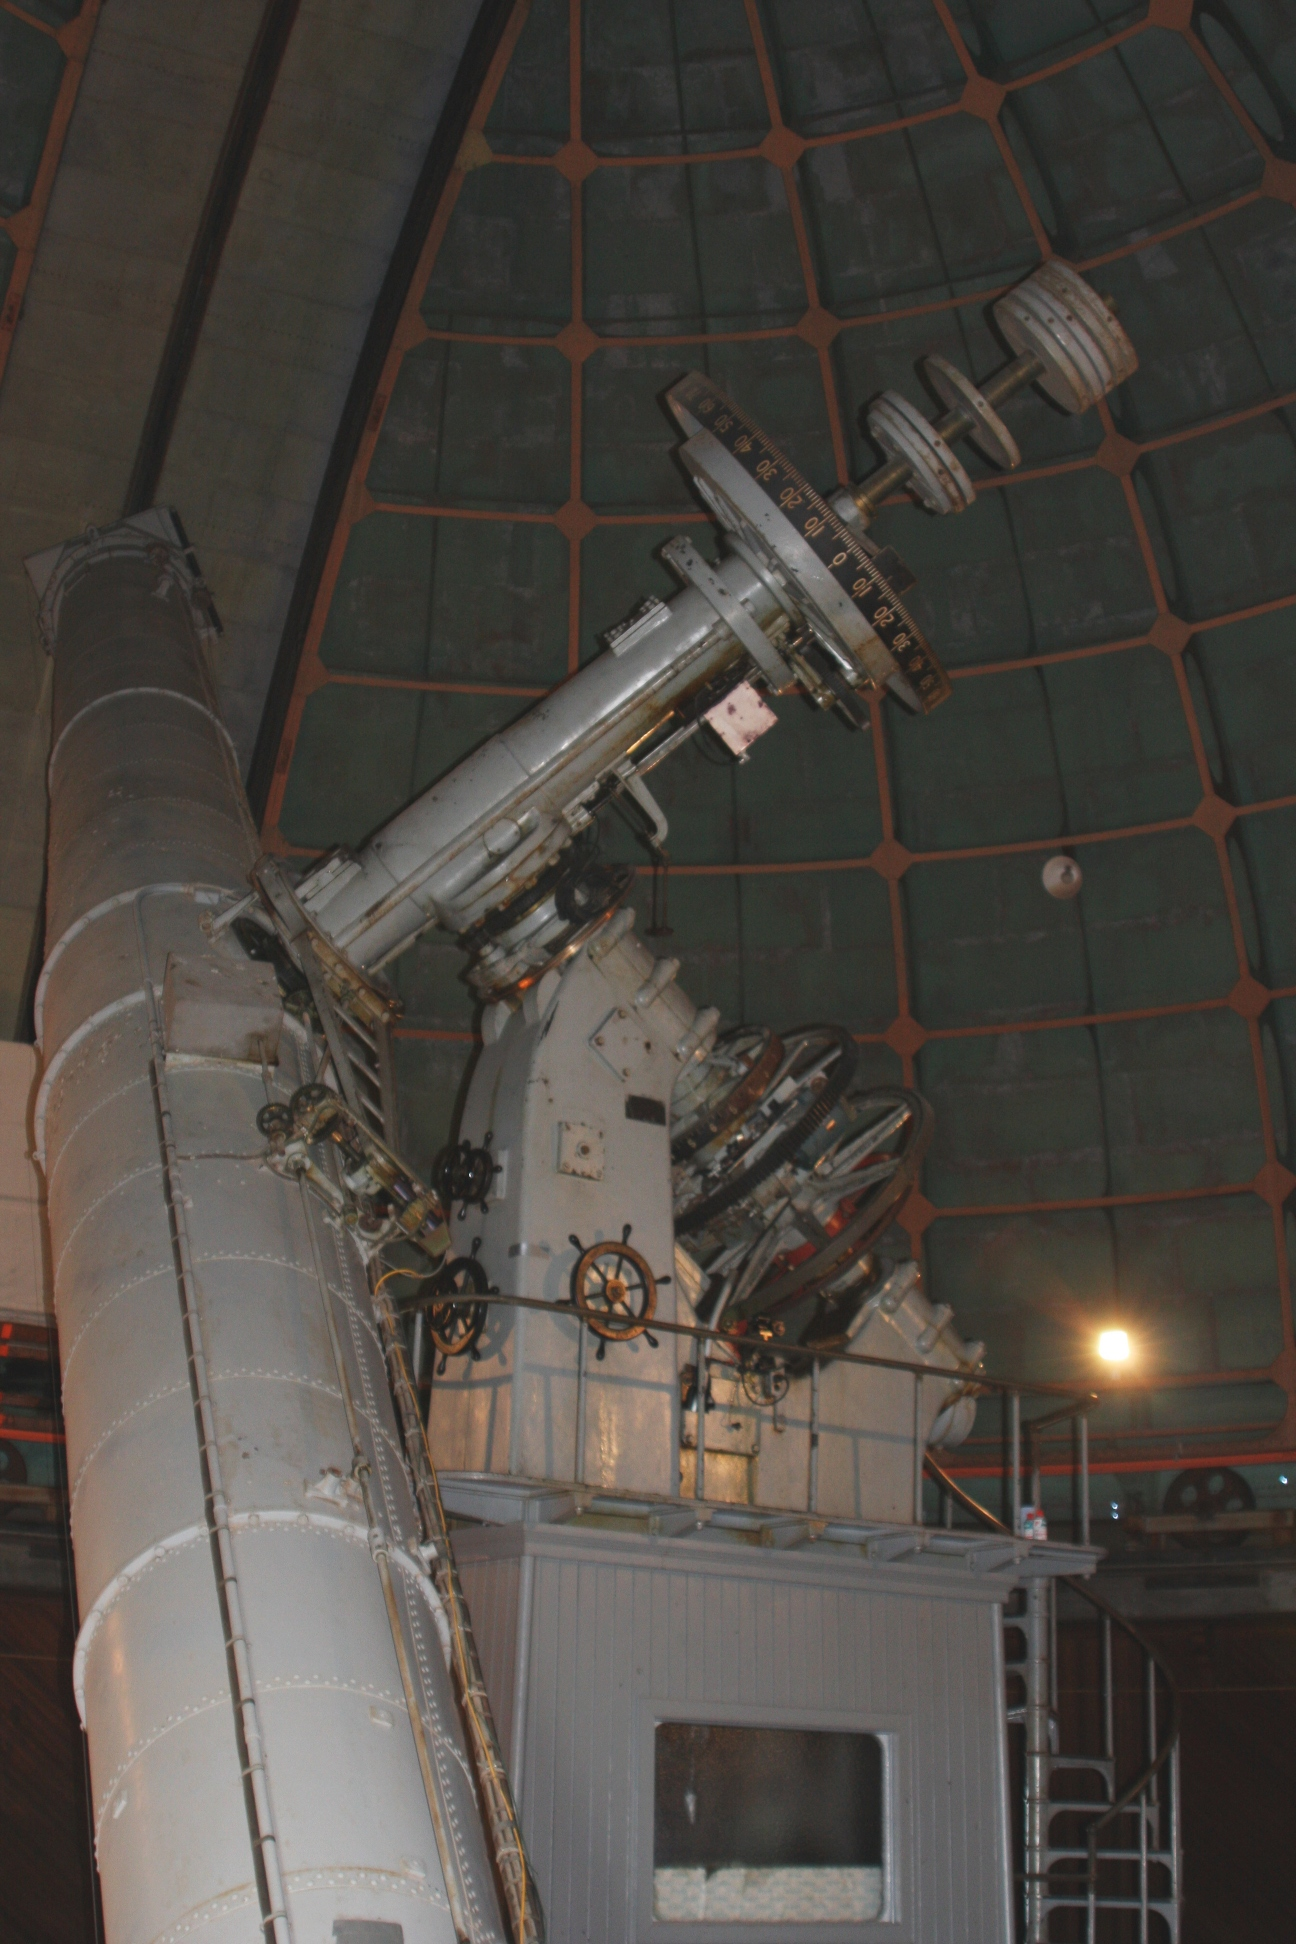 Lick 36 Inch Telescope Manual Pointing Limits